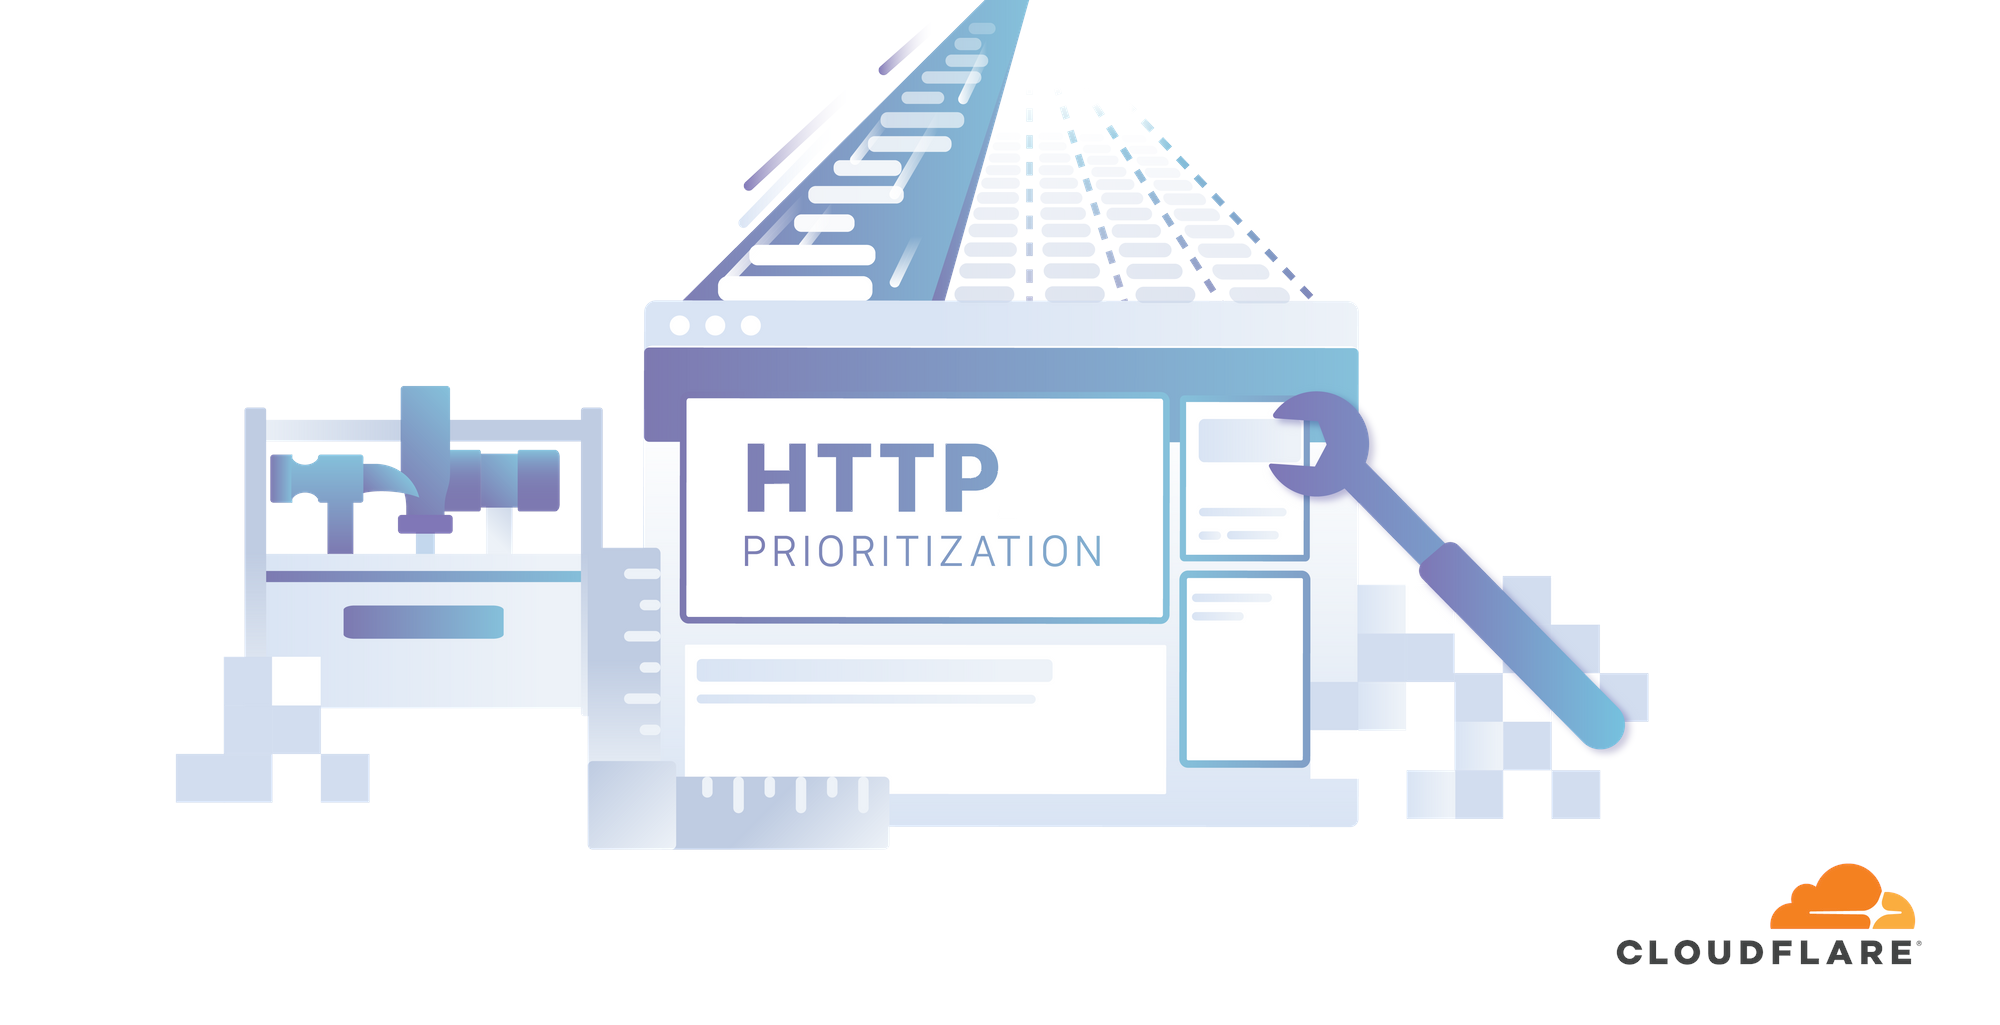 Adopting a new approach to HTTP prioritization